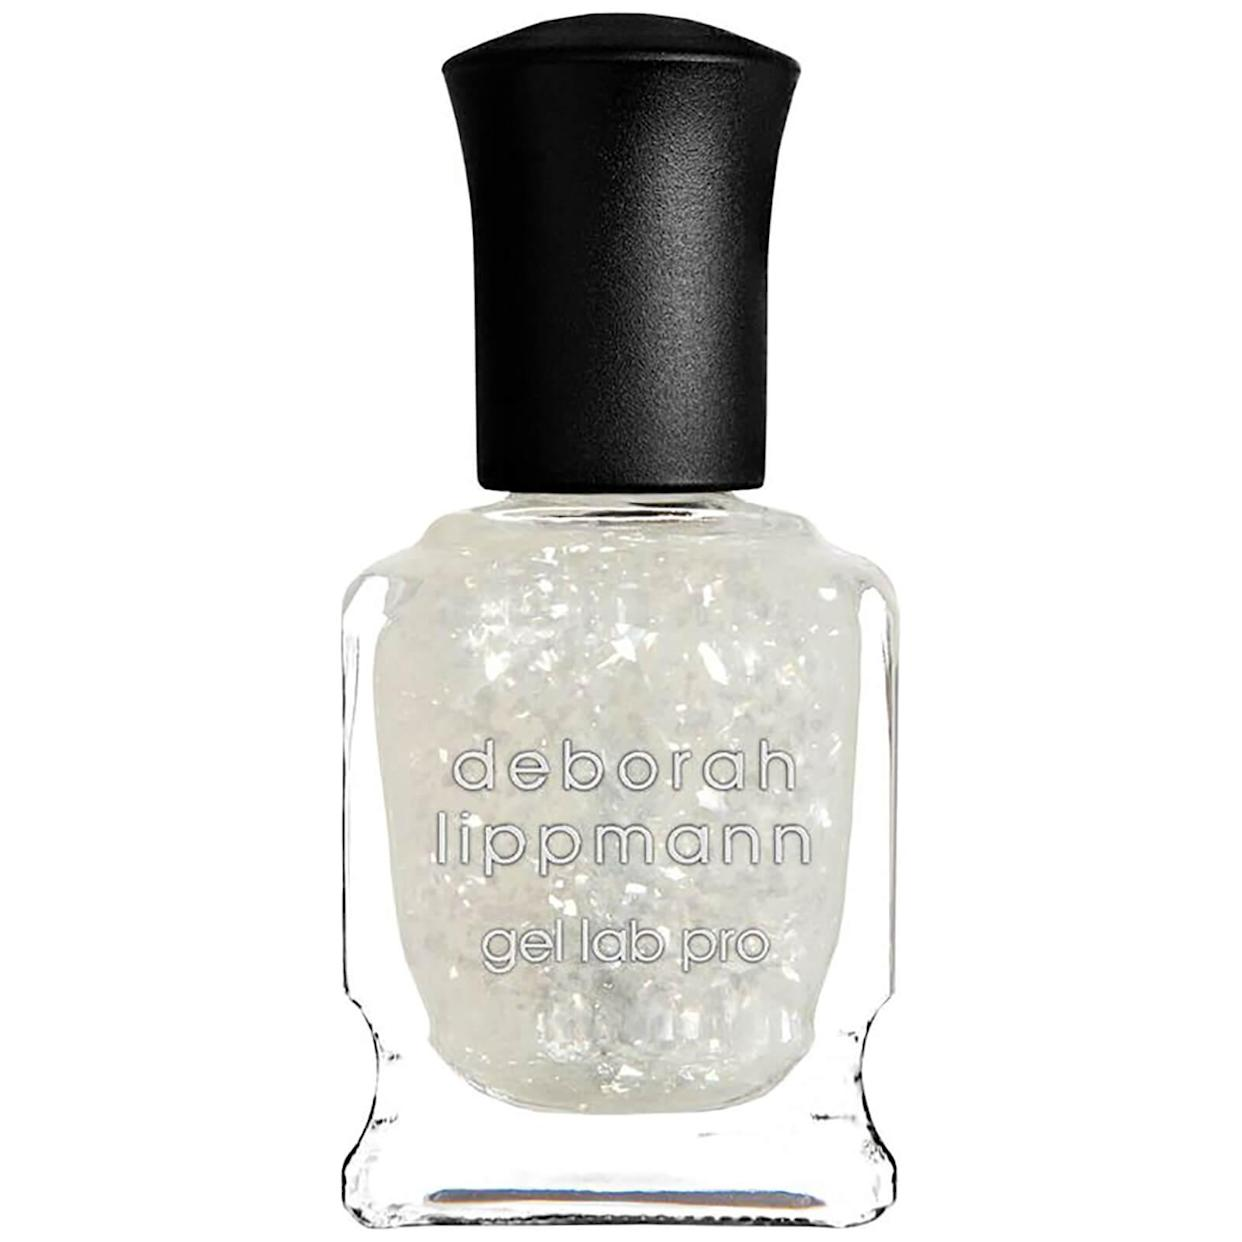 """<h3>Deborah Lippmann Nail Polish in This Magic Moment</h3> <br>When your go-to polish — be it <a href=""""https://www.refinery29.com/en-us/best-gray-nail-polish"""" rel=""""nofollow noopener"""" target=""""_blank"""" data-ylk=""""slk:slate gray"""" class=""""link rapid-noclick-resp"""">slate gray</a> or <a href=""""https://www.refinery29.com/en-us/best-pink-nail-polish"""" rel=""""nofollow noopener"""" target=""""_blank"""" data-ylk=""""slk:pale pink"""" class=""""link rapid-noclick-resp"""">pale pink</a> — isn't packing that fresh, fun punch you're looking for, try layering on a glitter topcoat for some pizzazz. """"I love This Magic Moment by Deborah Lippmann,"""" says Tuttle. """"Because it's sheer white mica, you can swipe it over <em>any</em> polish base for a fresh, shiny finish.""""<br><br><strong>Deborah Lippmann</strong> Nail Polish in This Magic Moment, $, available at <a href=""""https://www.deborahlippmann.com/this-magic-moment"""" rel=""""nofollow noopener"""" target=""""_blank"""" data-ylk=""""slk:Deborah Lippmann"""" class=""""link rapid-noclick-resp"""">Deborah Lippmann</a><br>"""